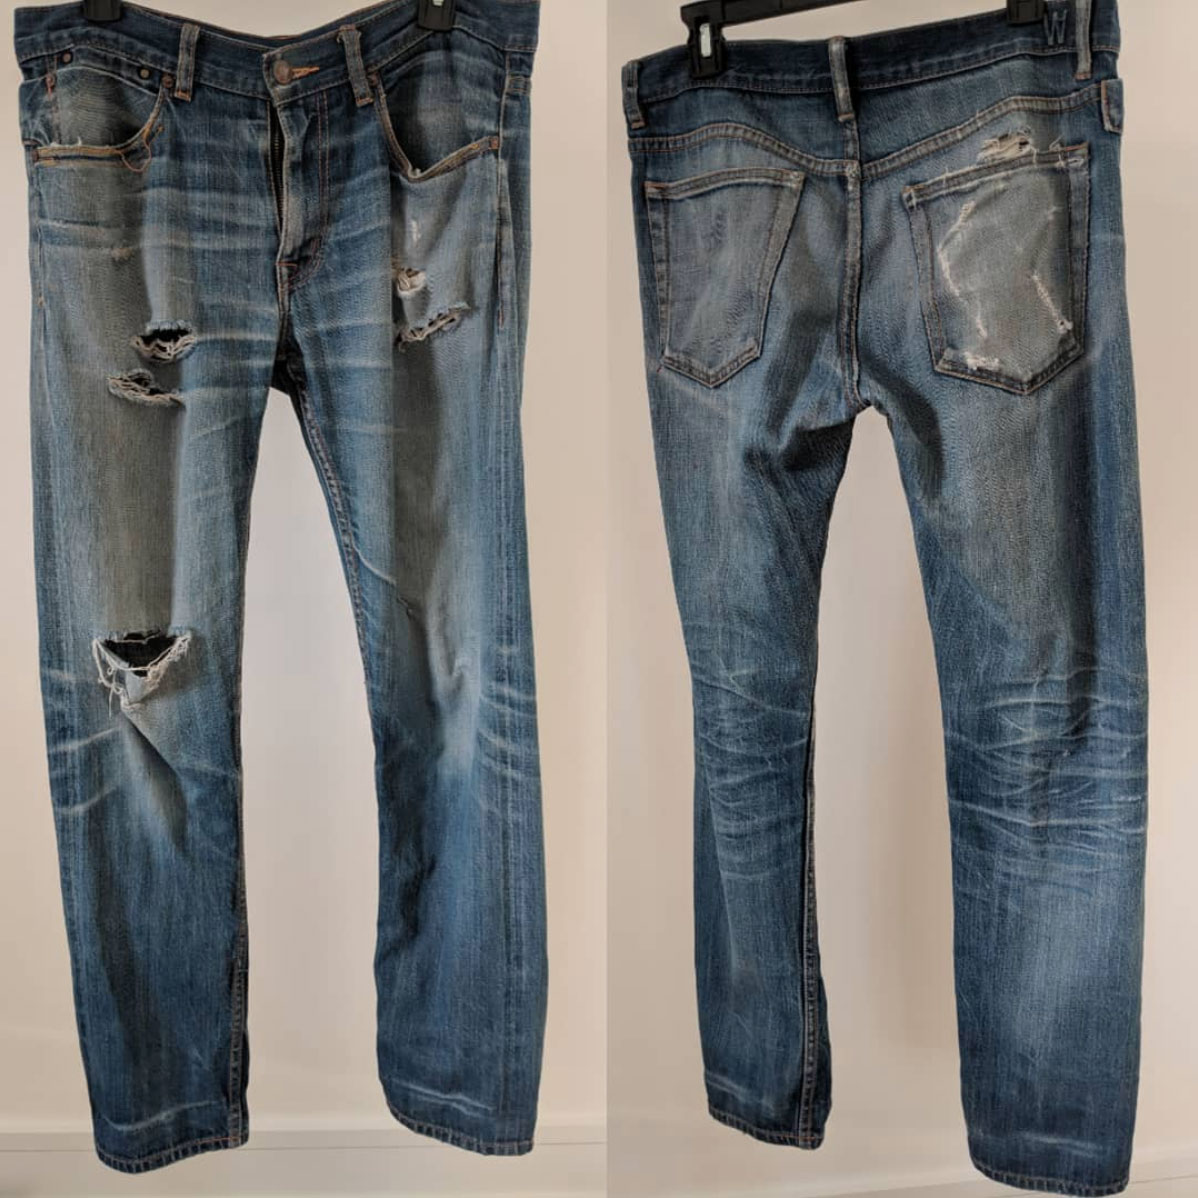 5-year-old naturally aged raw denim jeans by Williamsburg Garment Co.